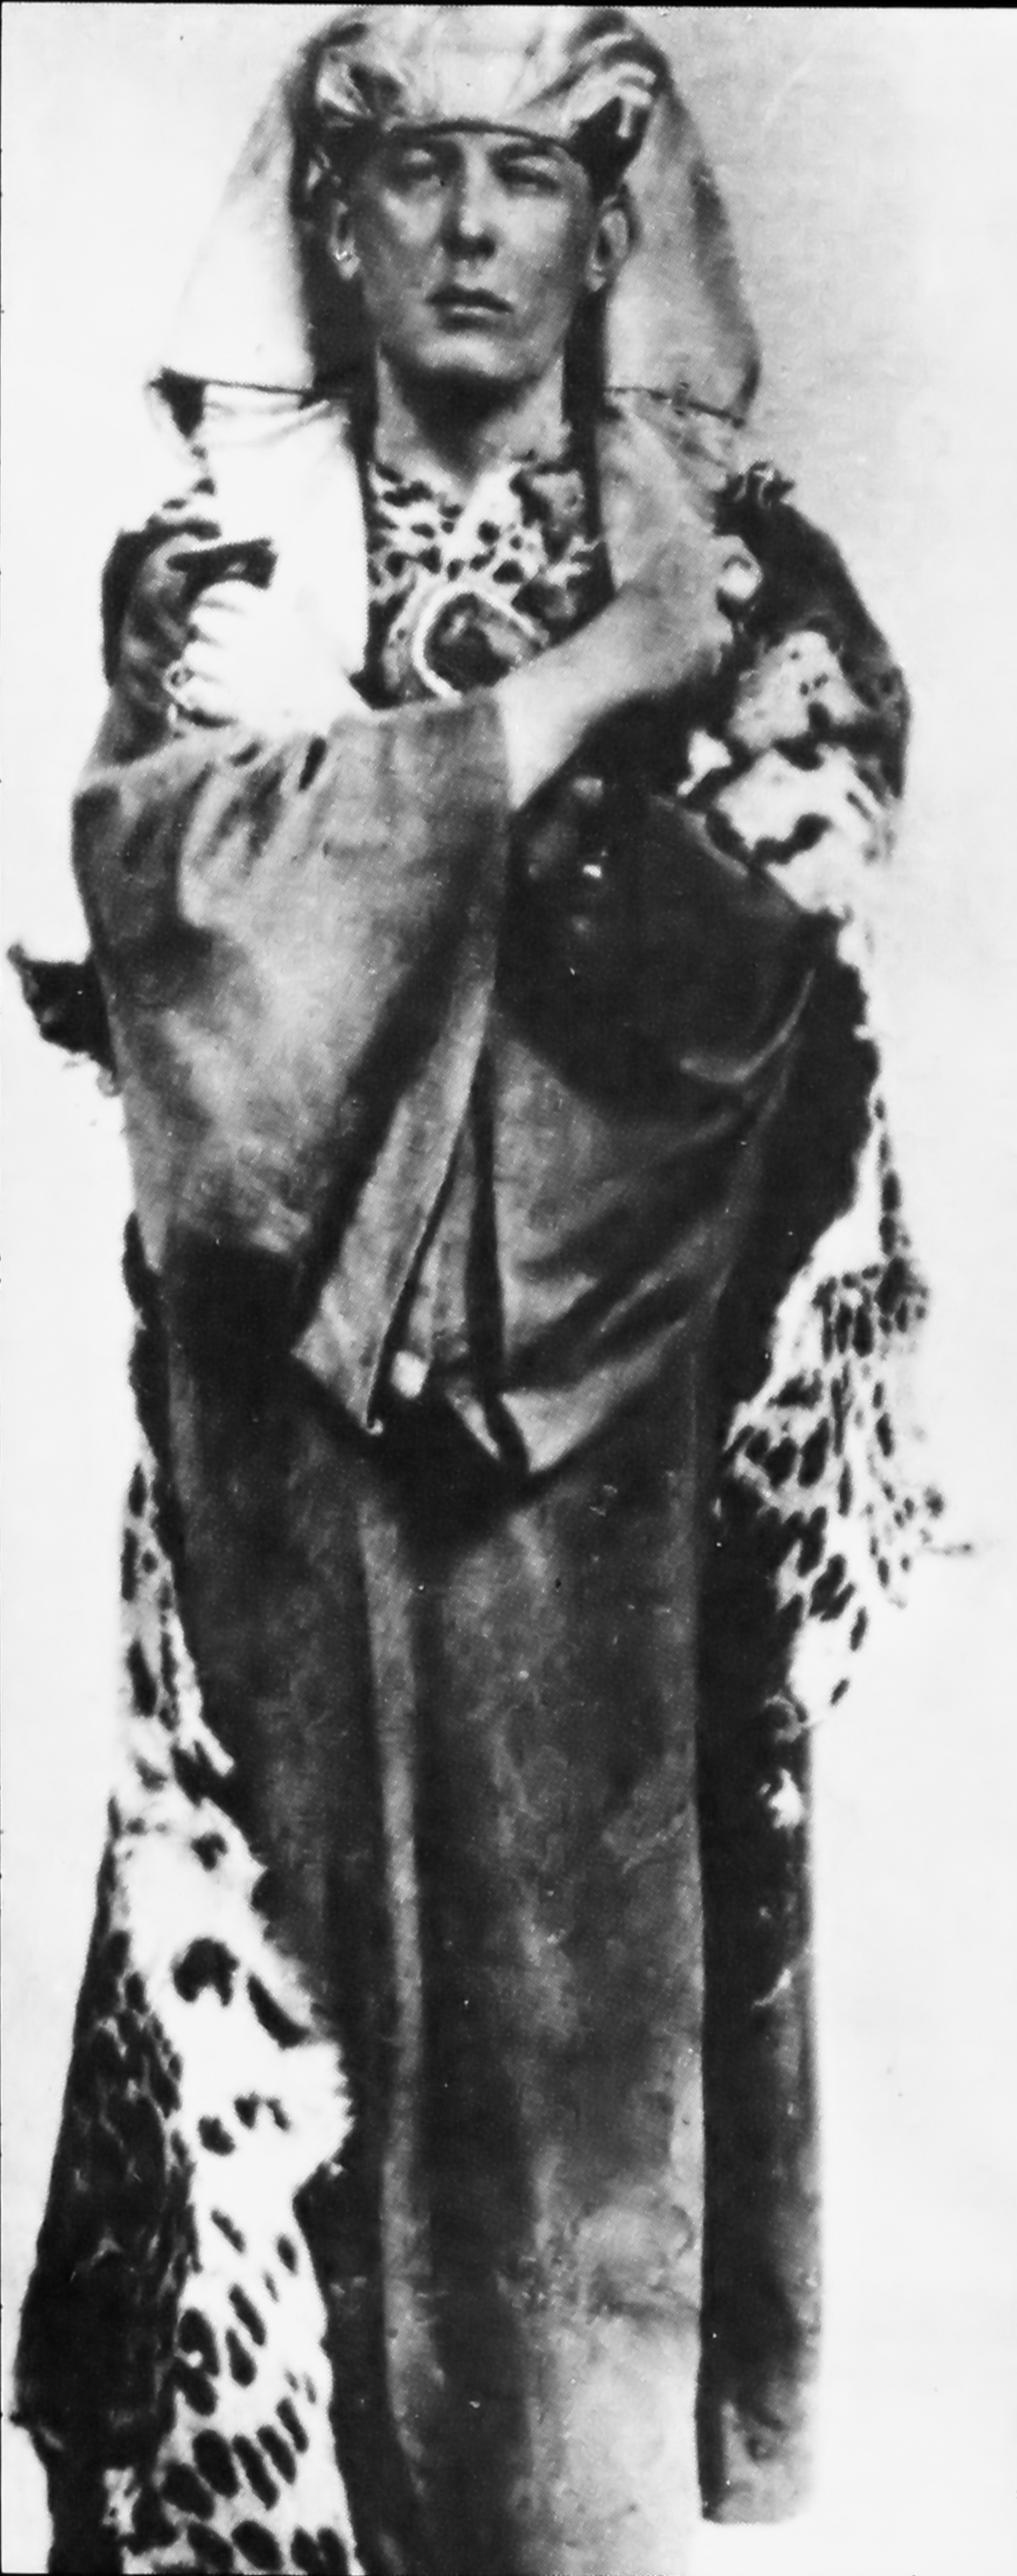 https://upload.wikimedia.org/wikipedia/commons/6/63/Aleister_Crowley_as_Osiris.png